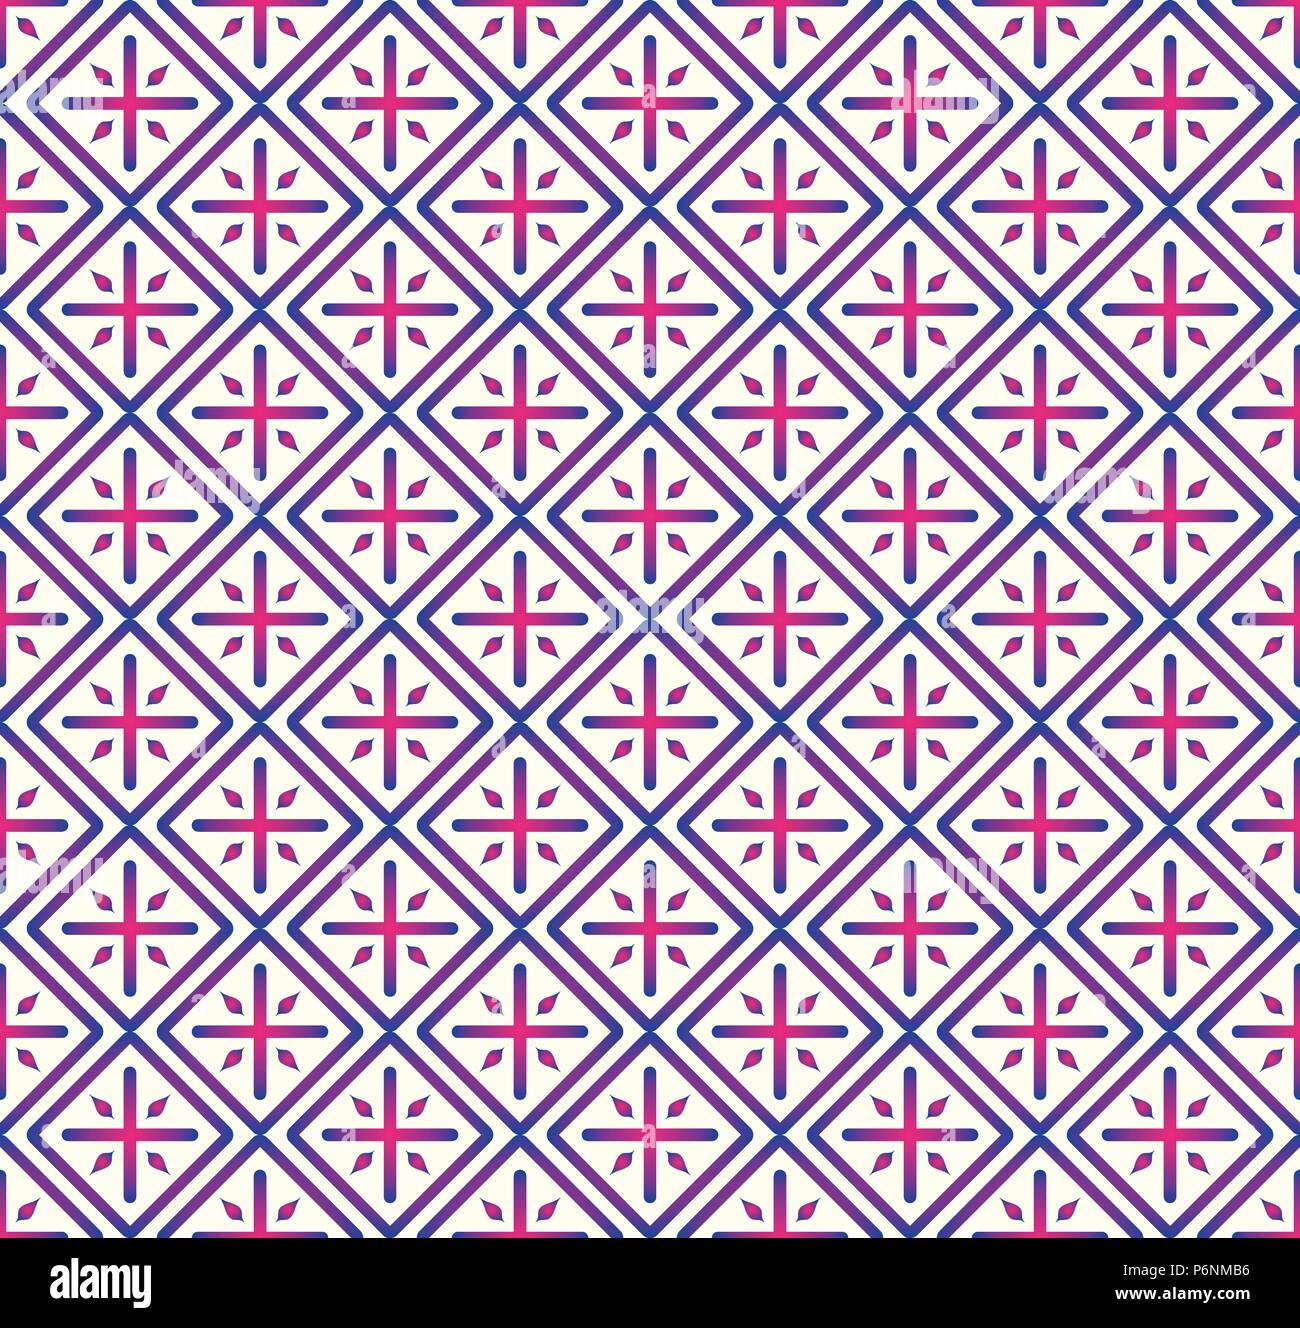 Blue Plus sign and rectangle shape seamless pattern. Abstract pattern style for graphic or modern design. - Stock Vector